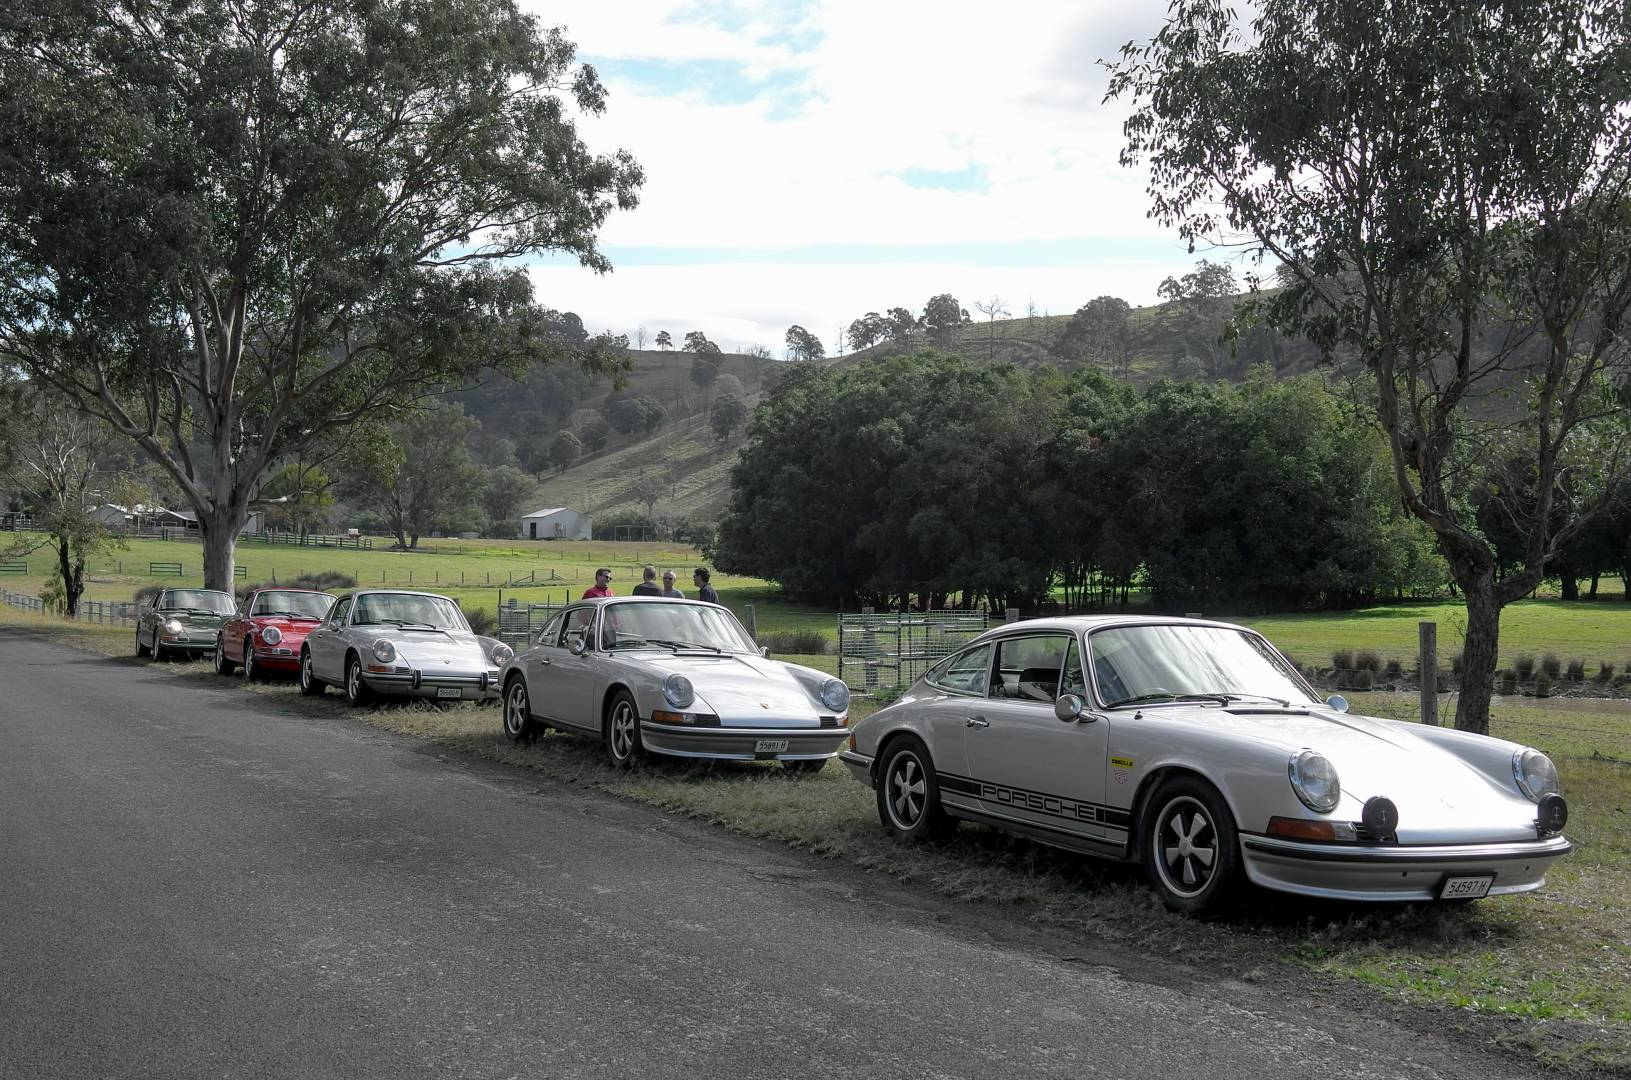 On a previous Road Trip – my 911 is the third back